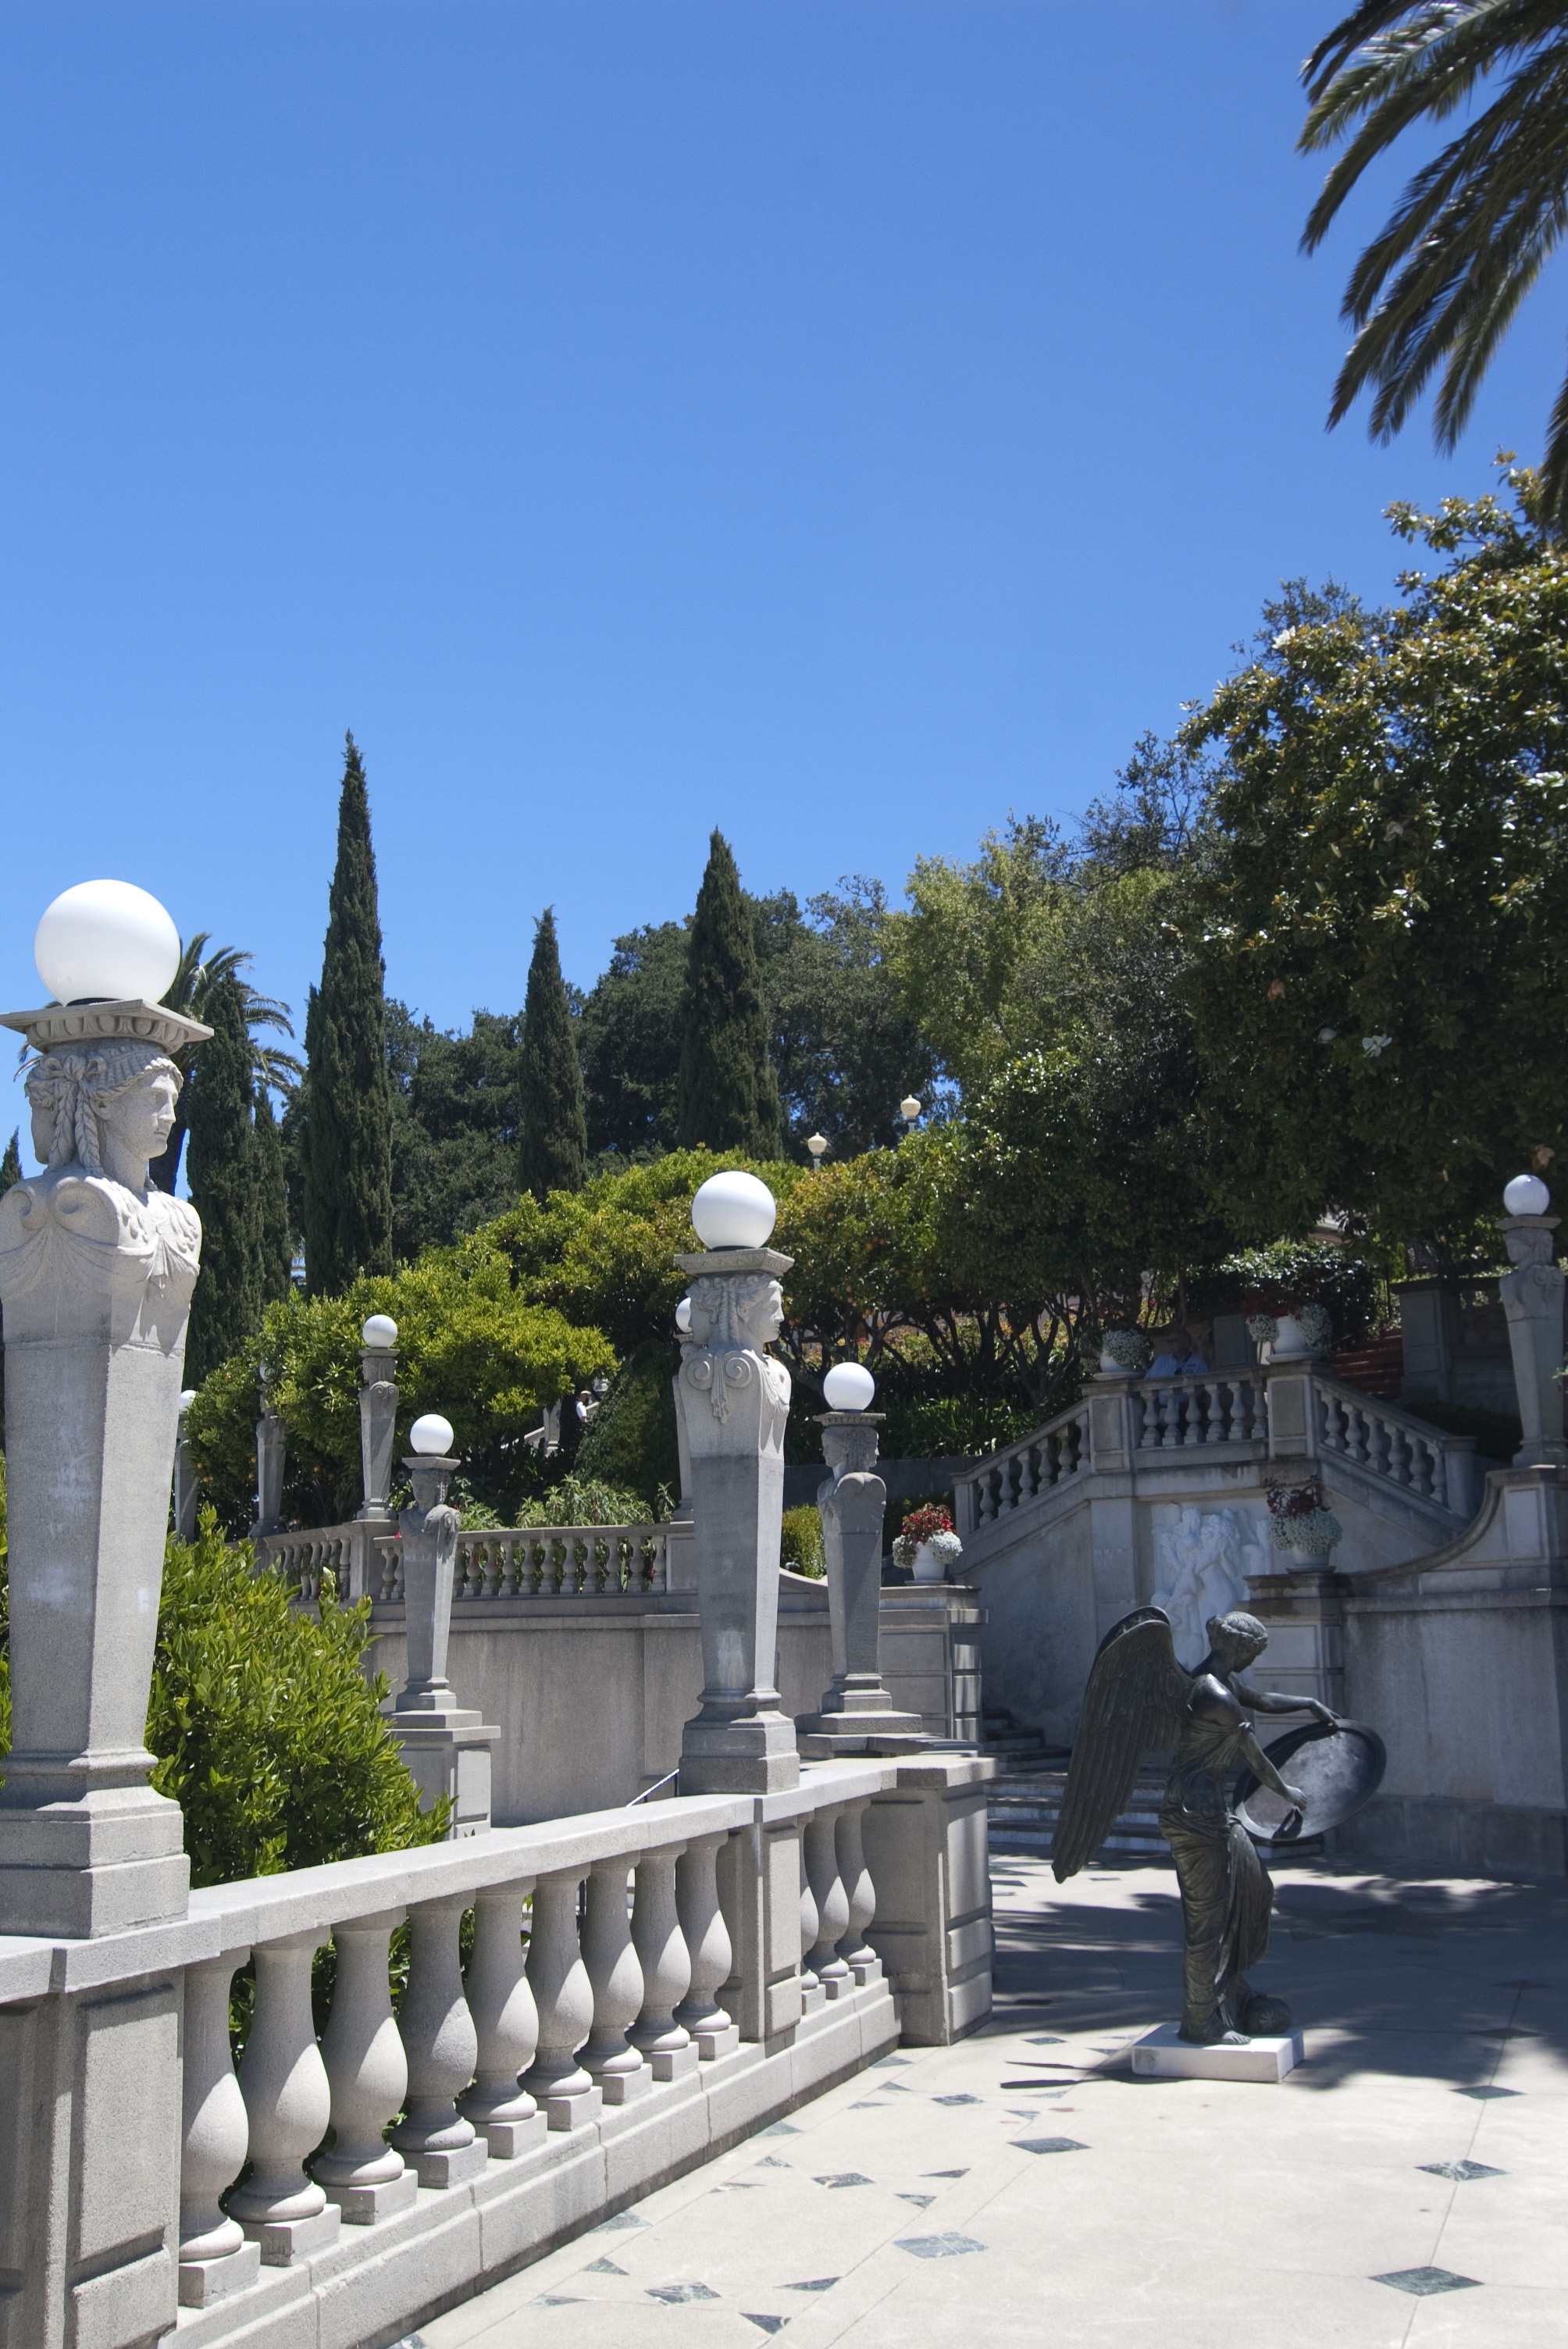 Free stock photo 2549 hearst castle gardens freeimageslive for Castle gardens pool